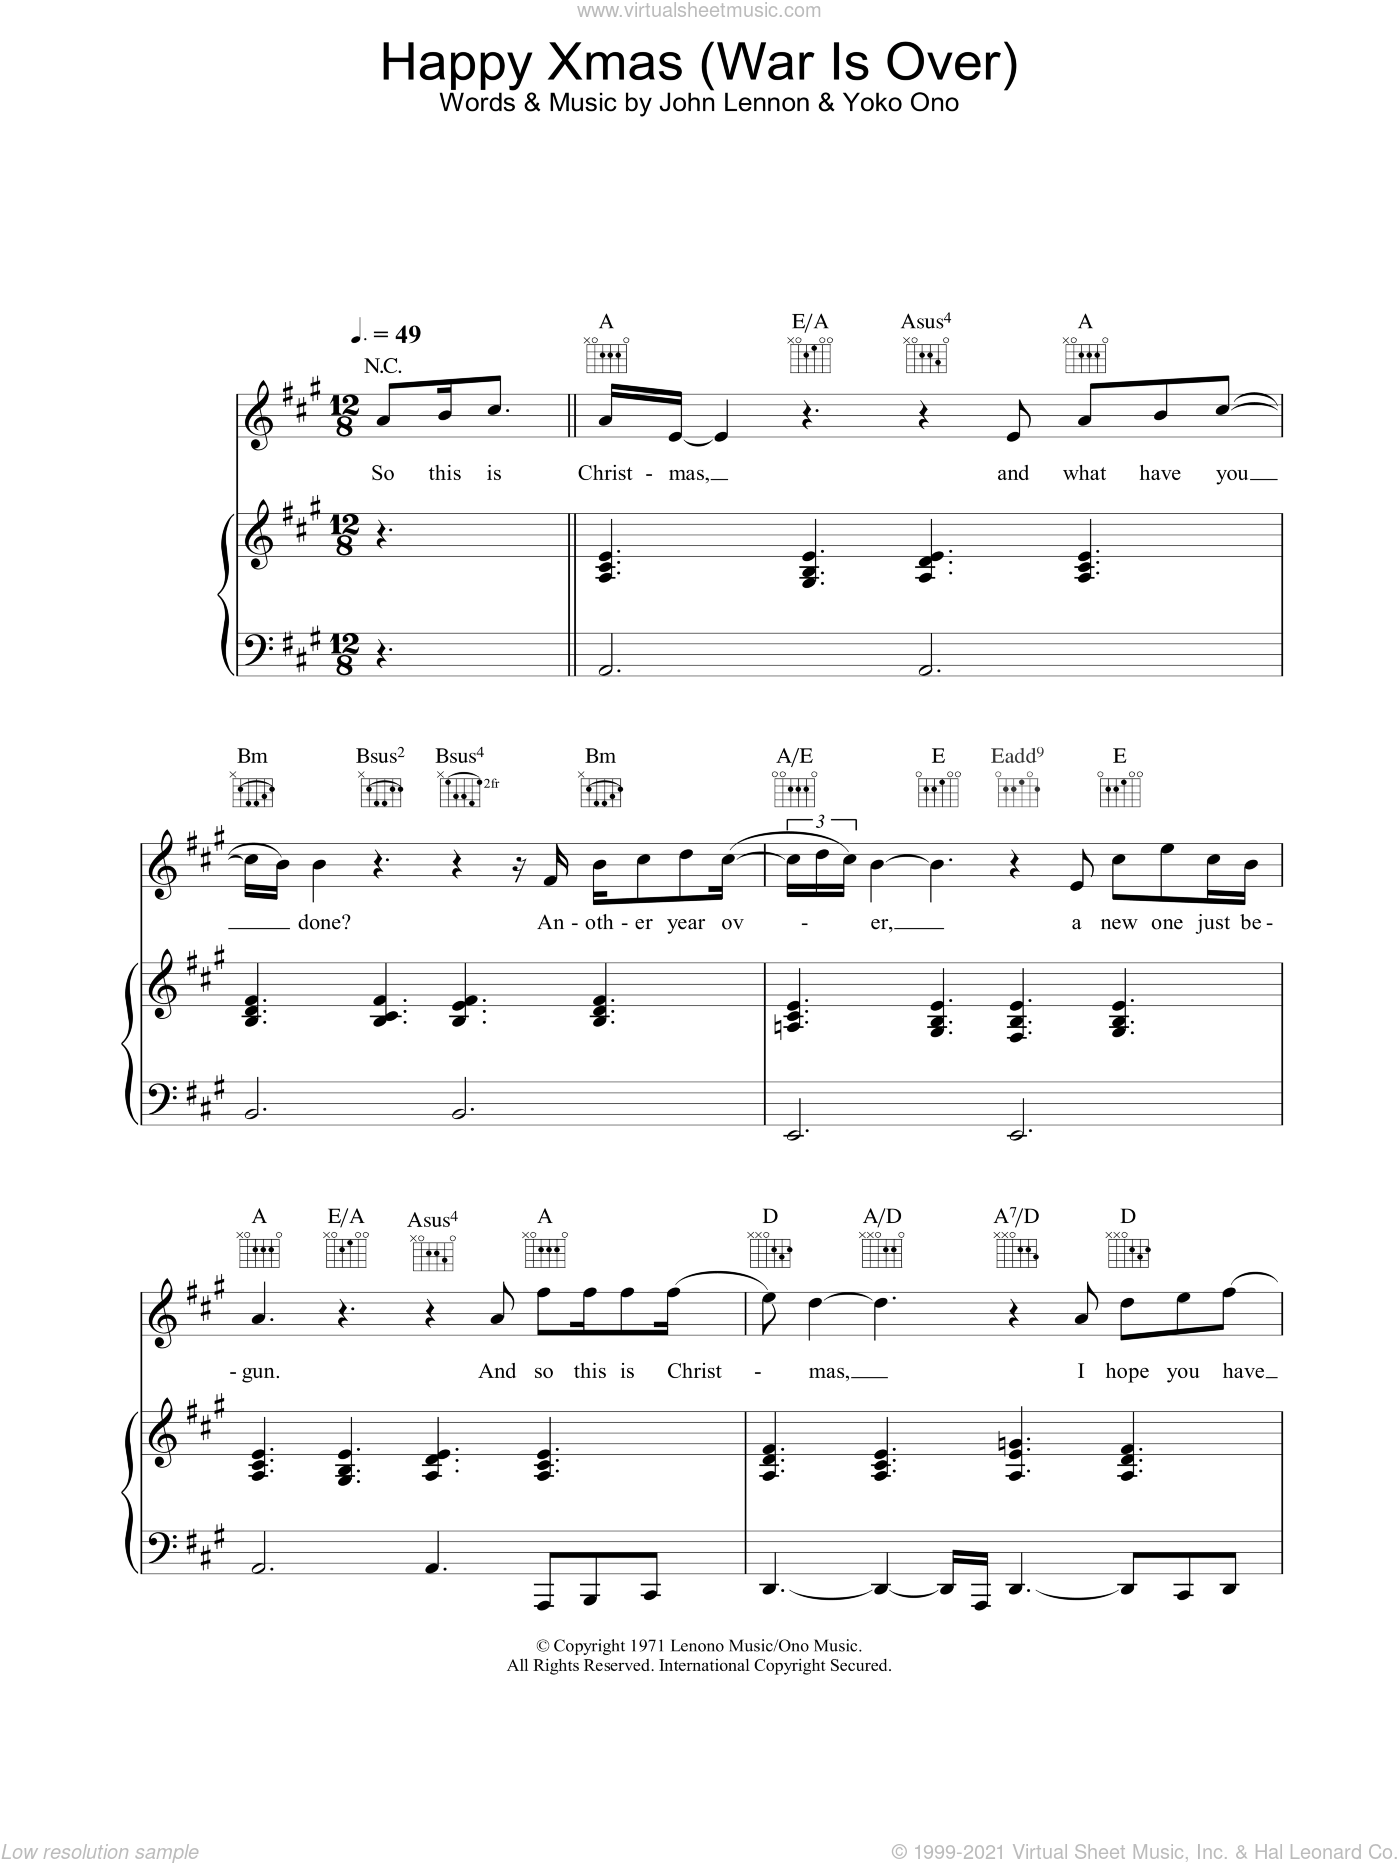 Happy Christmas War Is Over Chords.2003 Happy Xmas War Is Over Sheet Music For Voice Piano Or Guitar